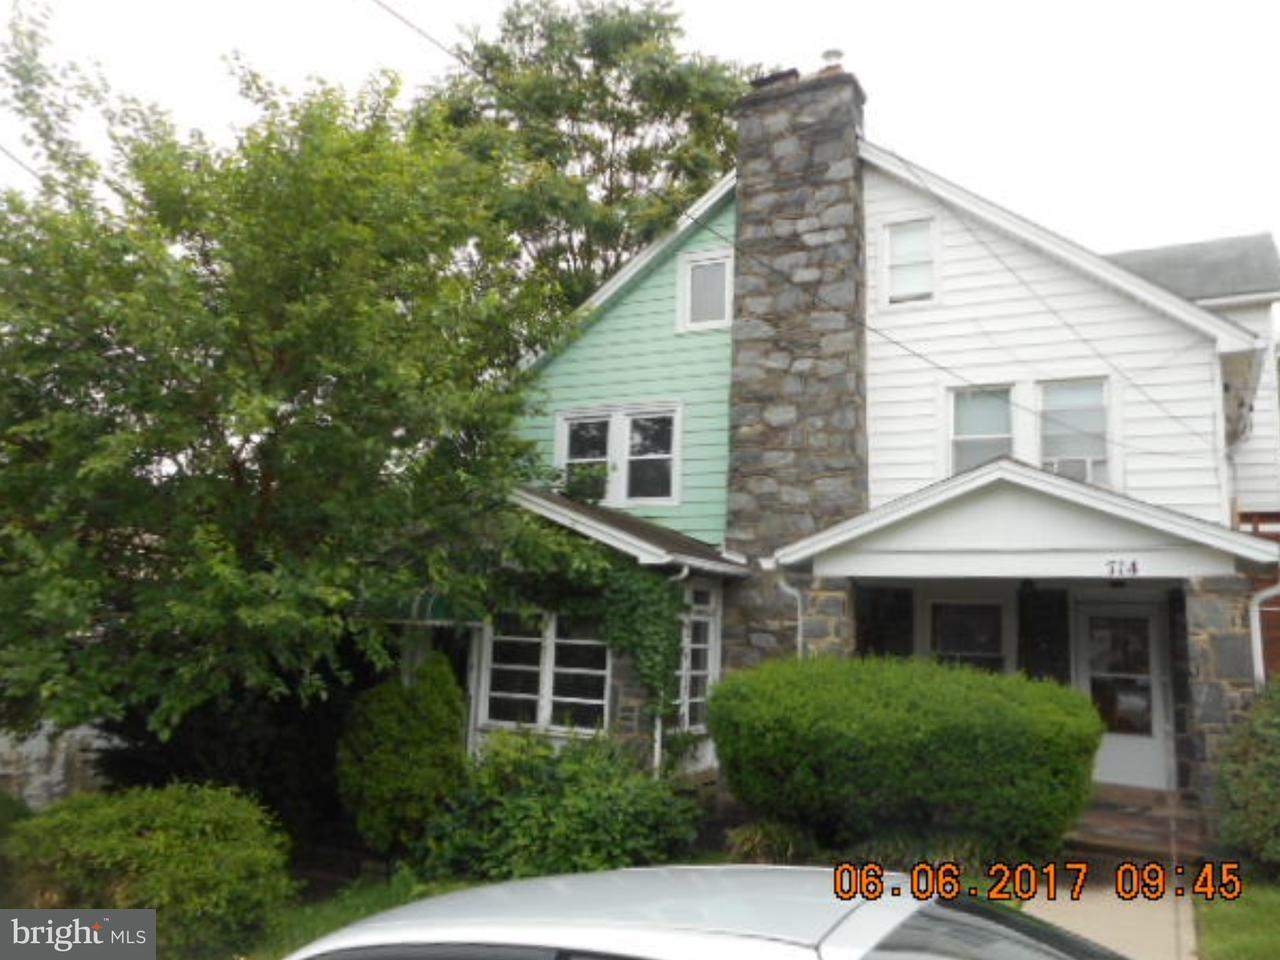 712  Belfield Drexel Hill, PA 19026